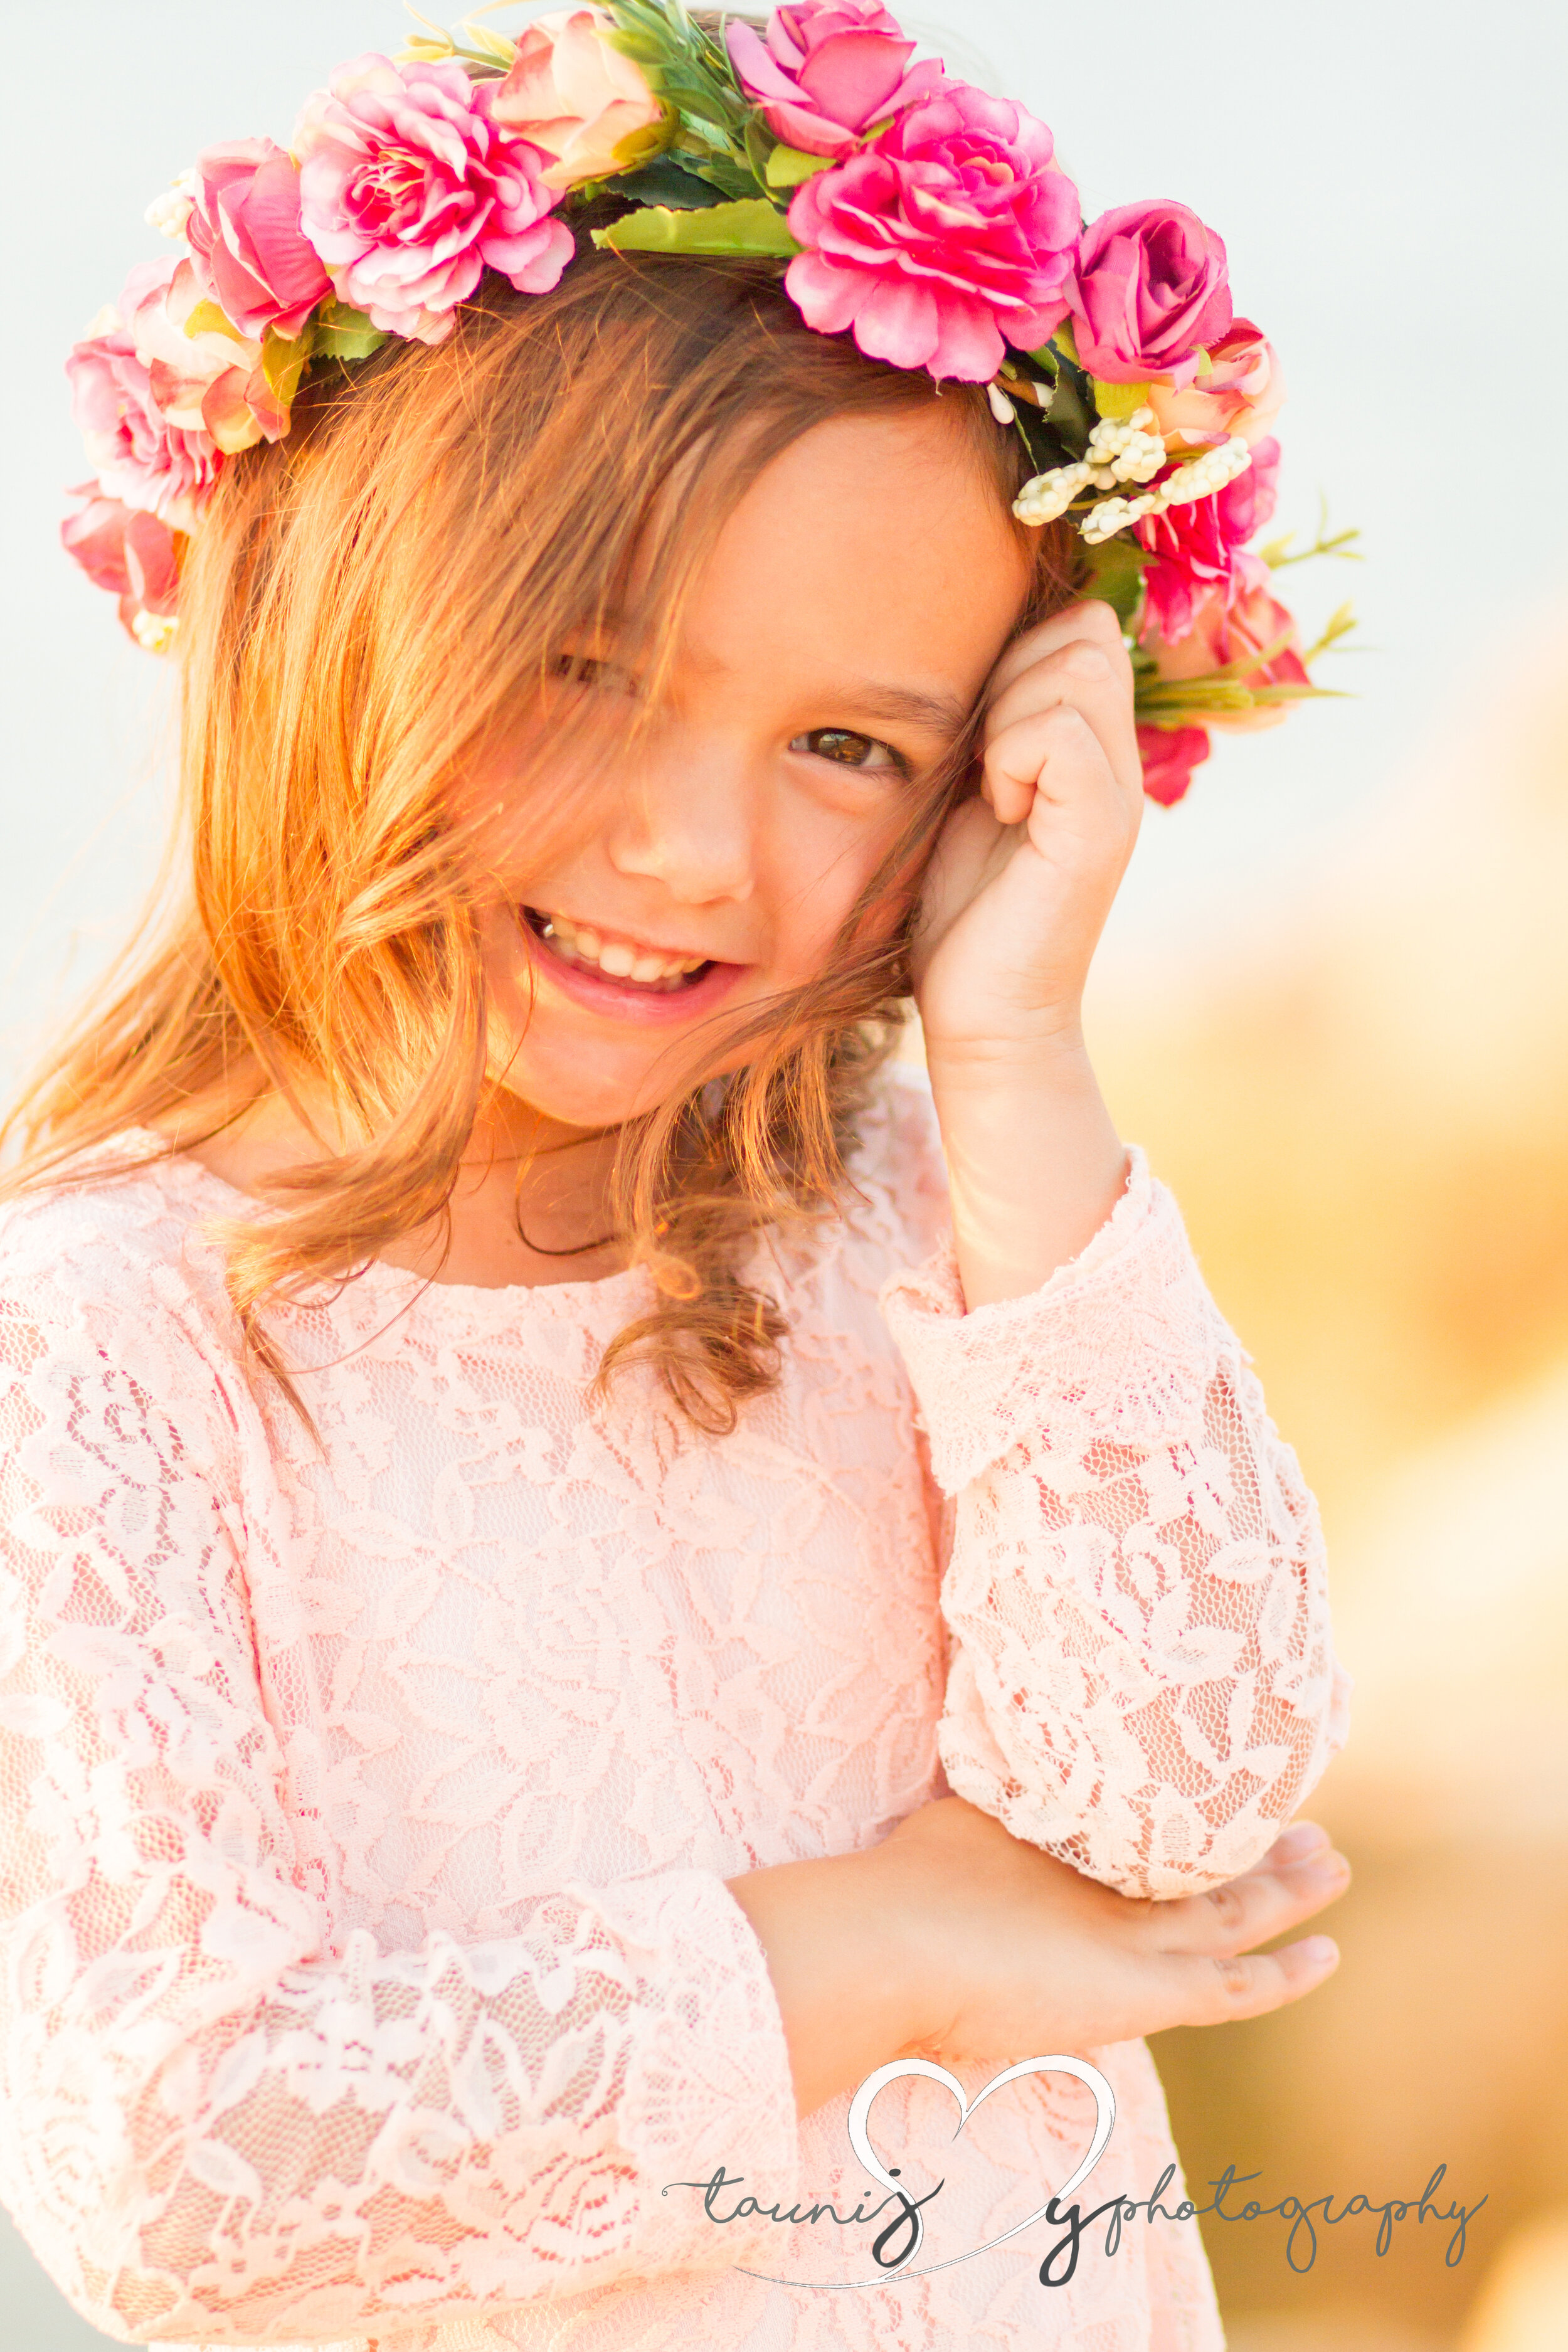 Children portraits are some of the sweetest.